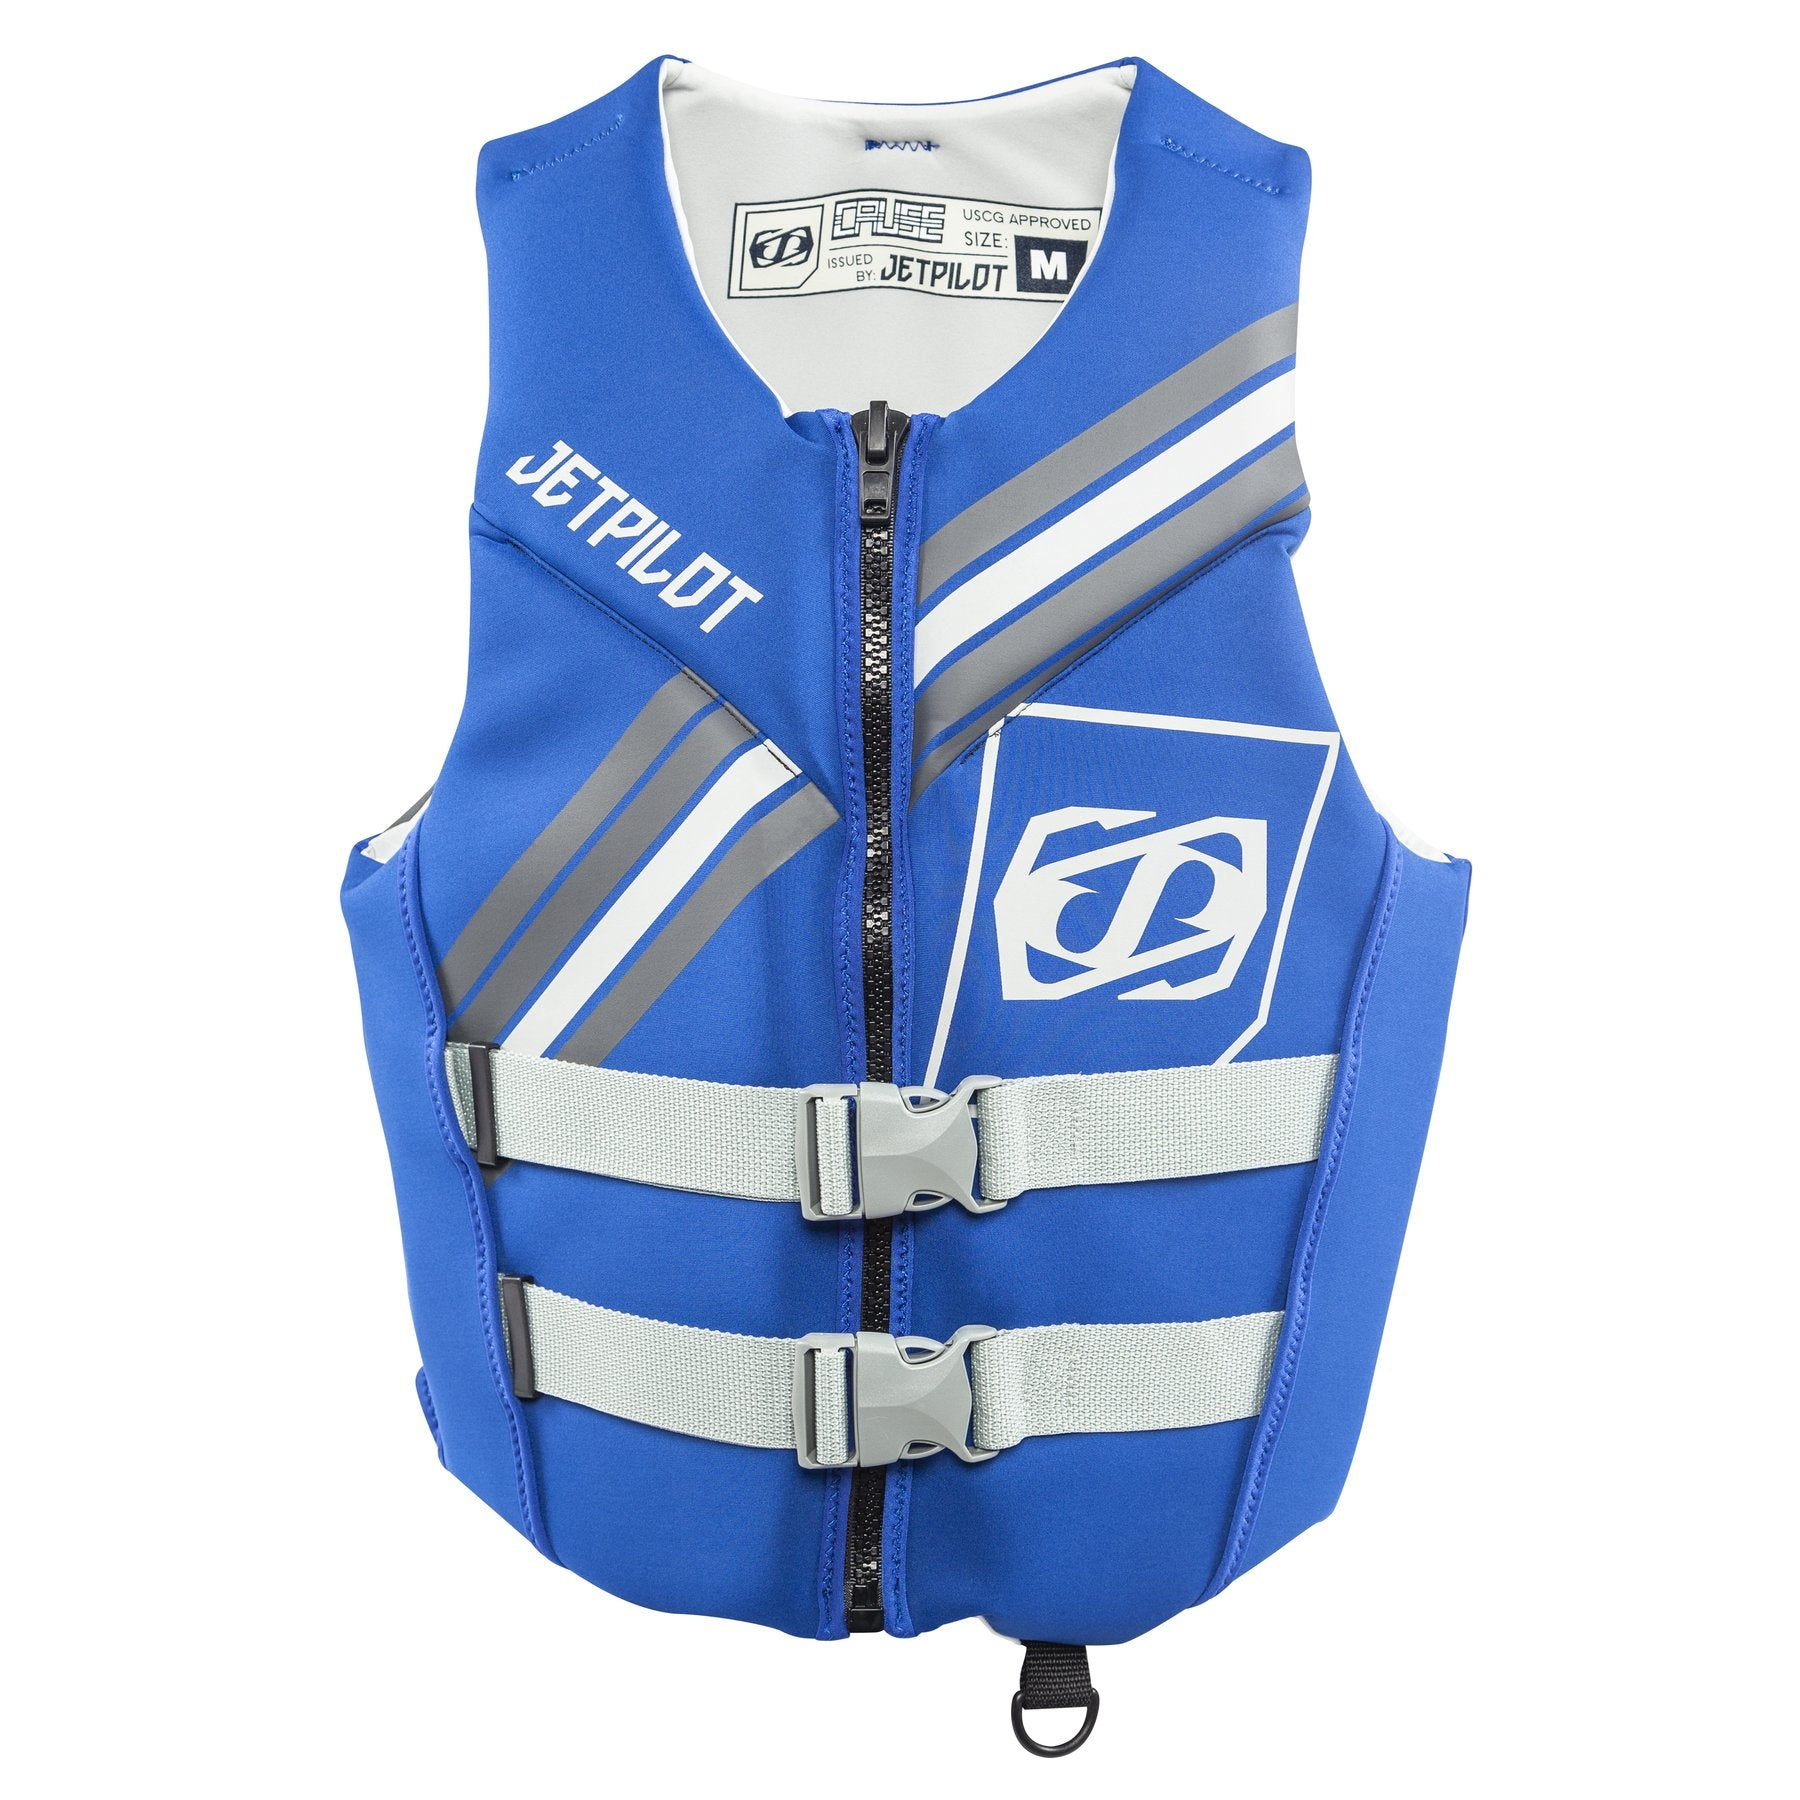 Jet Pilot Cause Neoprene Life Jacket - 88 Gear